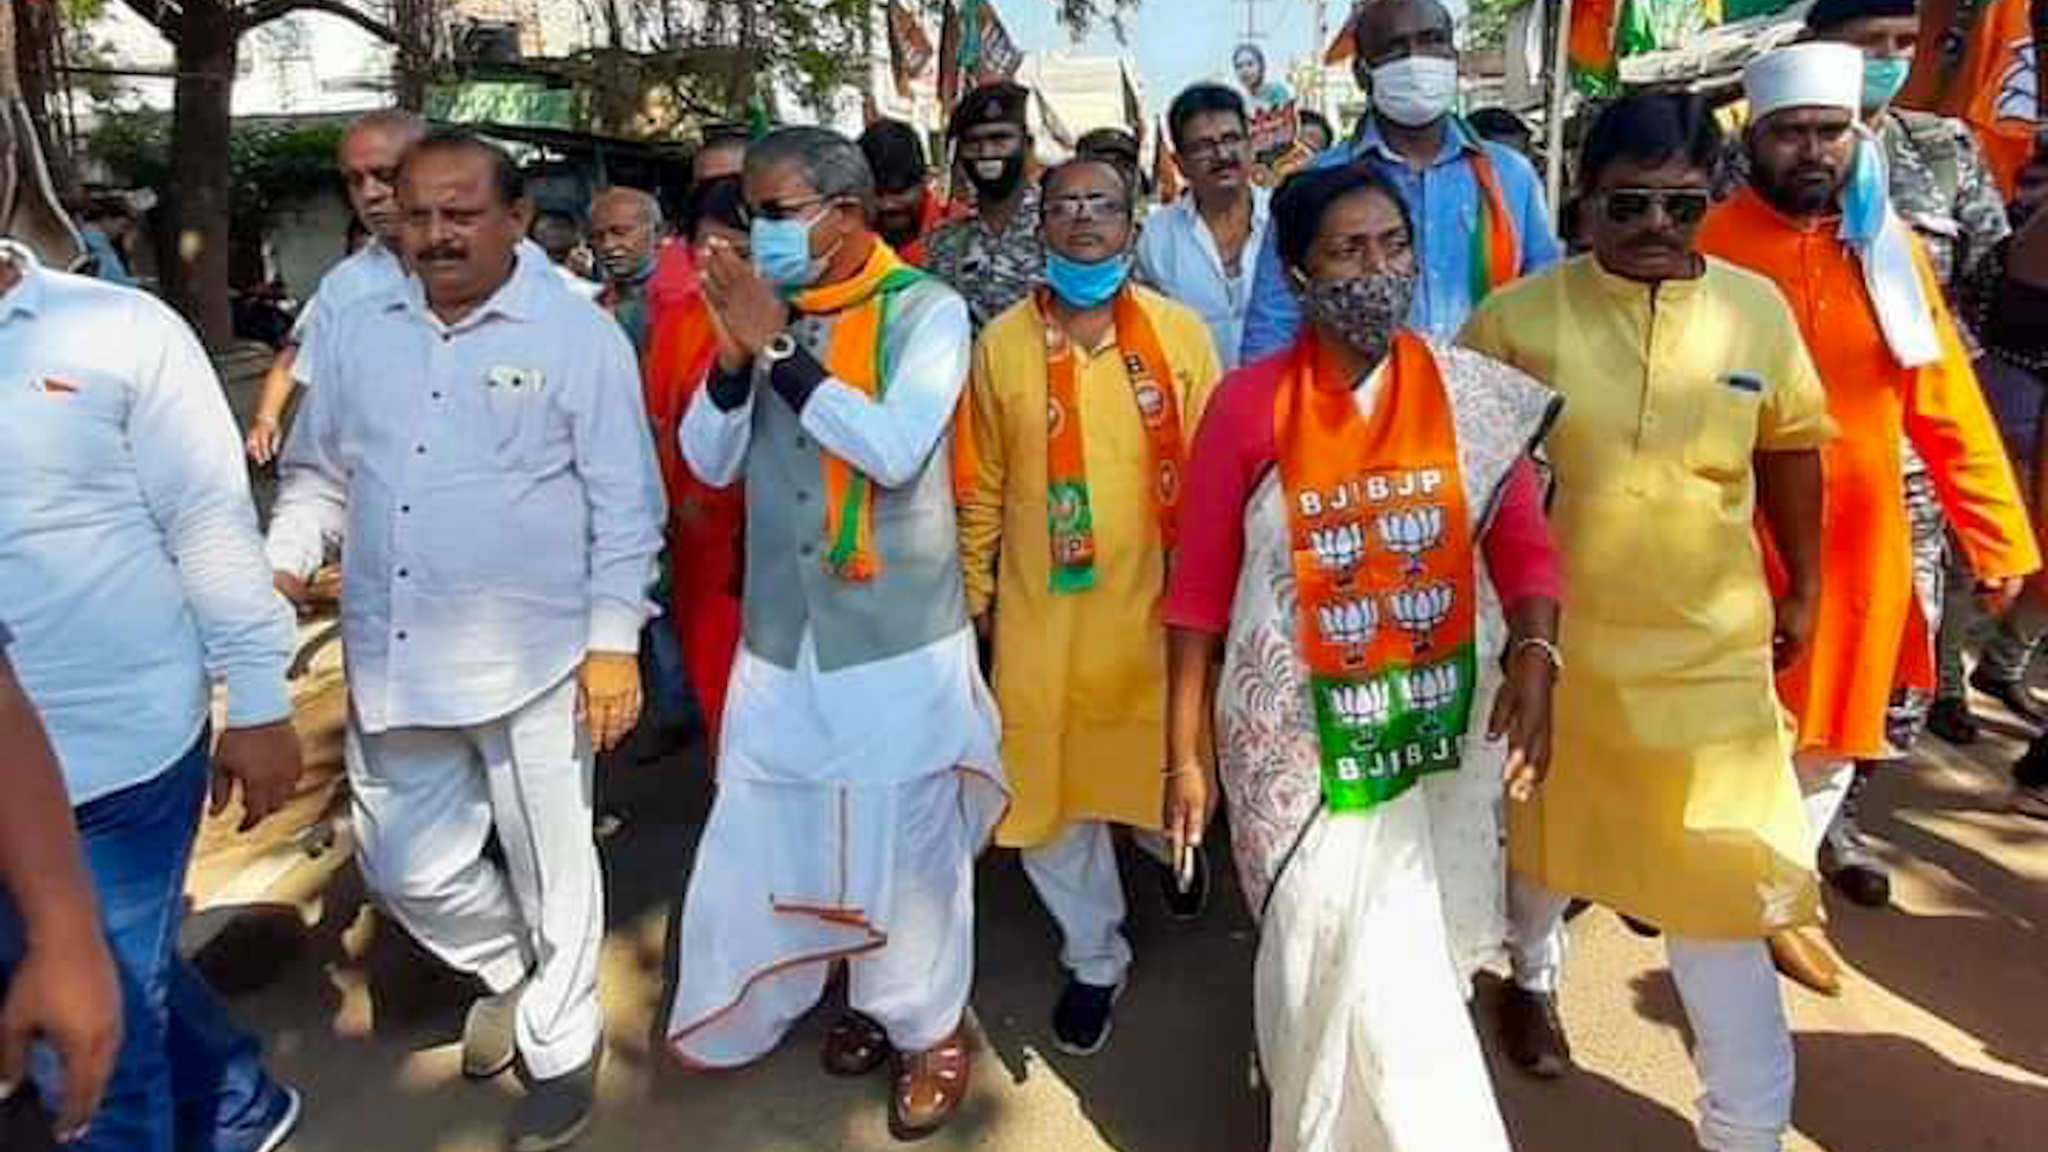 On the last day of campaigning for Dumka by-election, BJP candidate Dr. Lewis Marandi  appealed to vote in favor of former Chief Minister, Babulal Marandi in Dumka city.